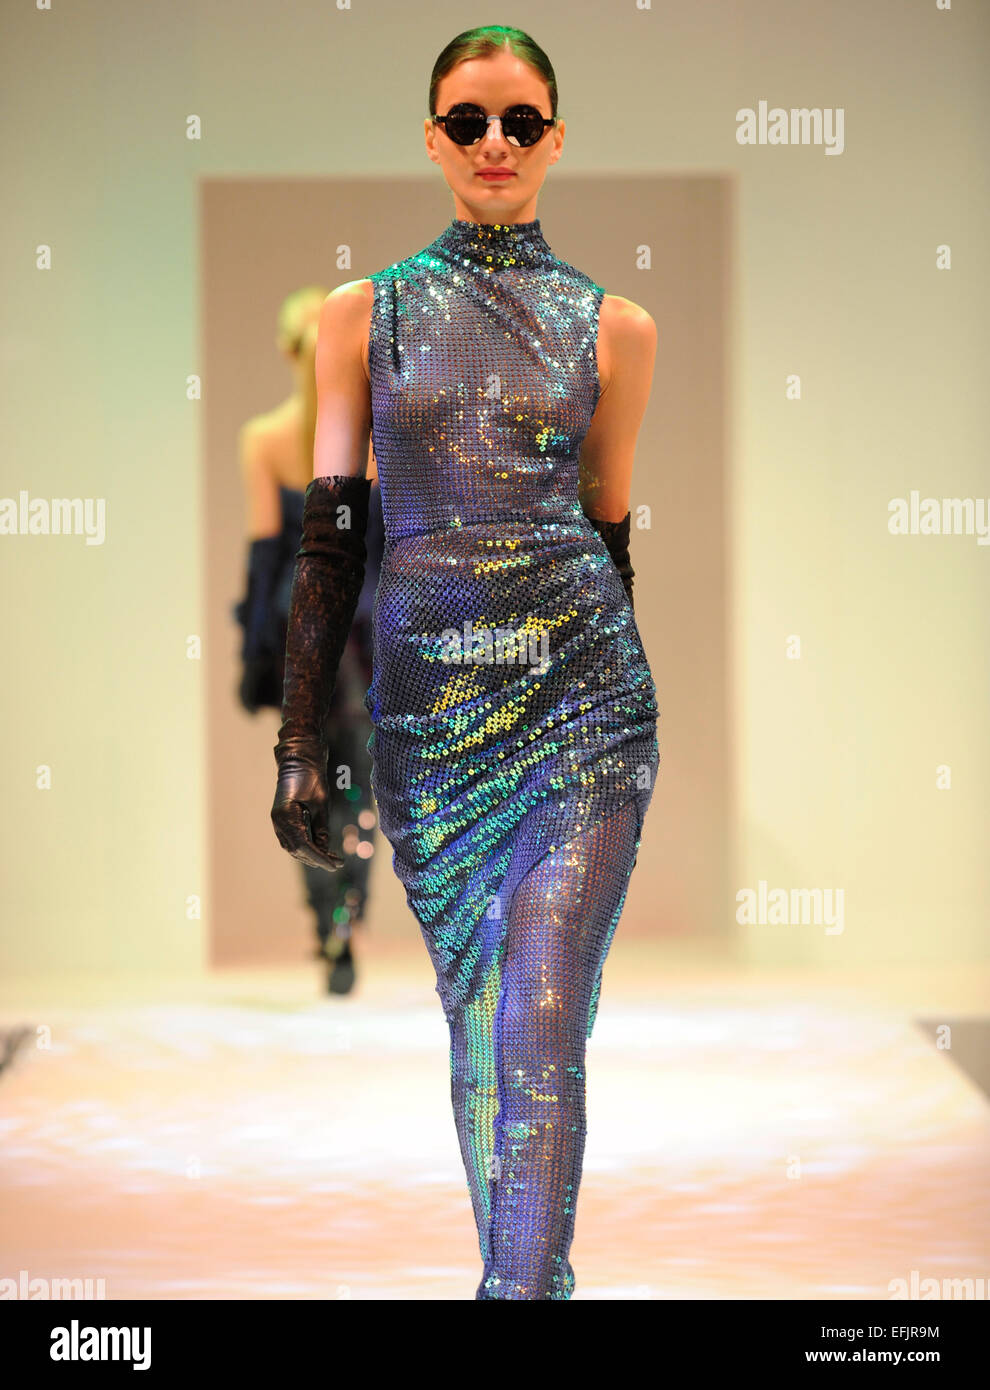 Fashion model on the catwalk during a Fyodor Golan fashion show - Stock Image